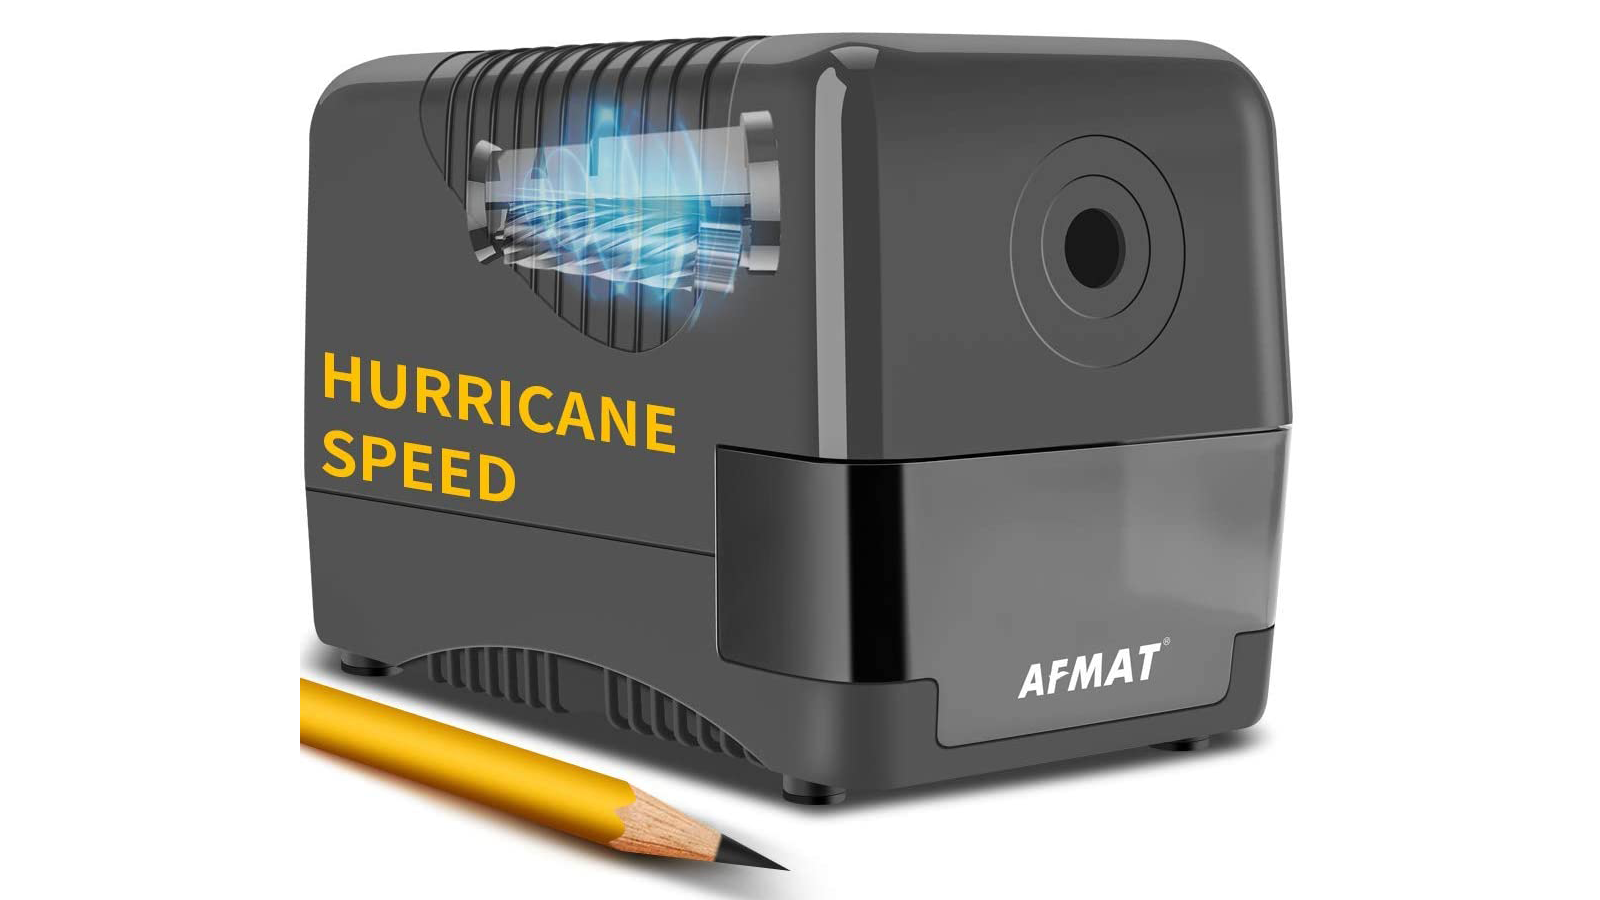 Forget Dull Pencils—This Electric Pencil Sharpener is All You Need